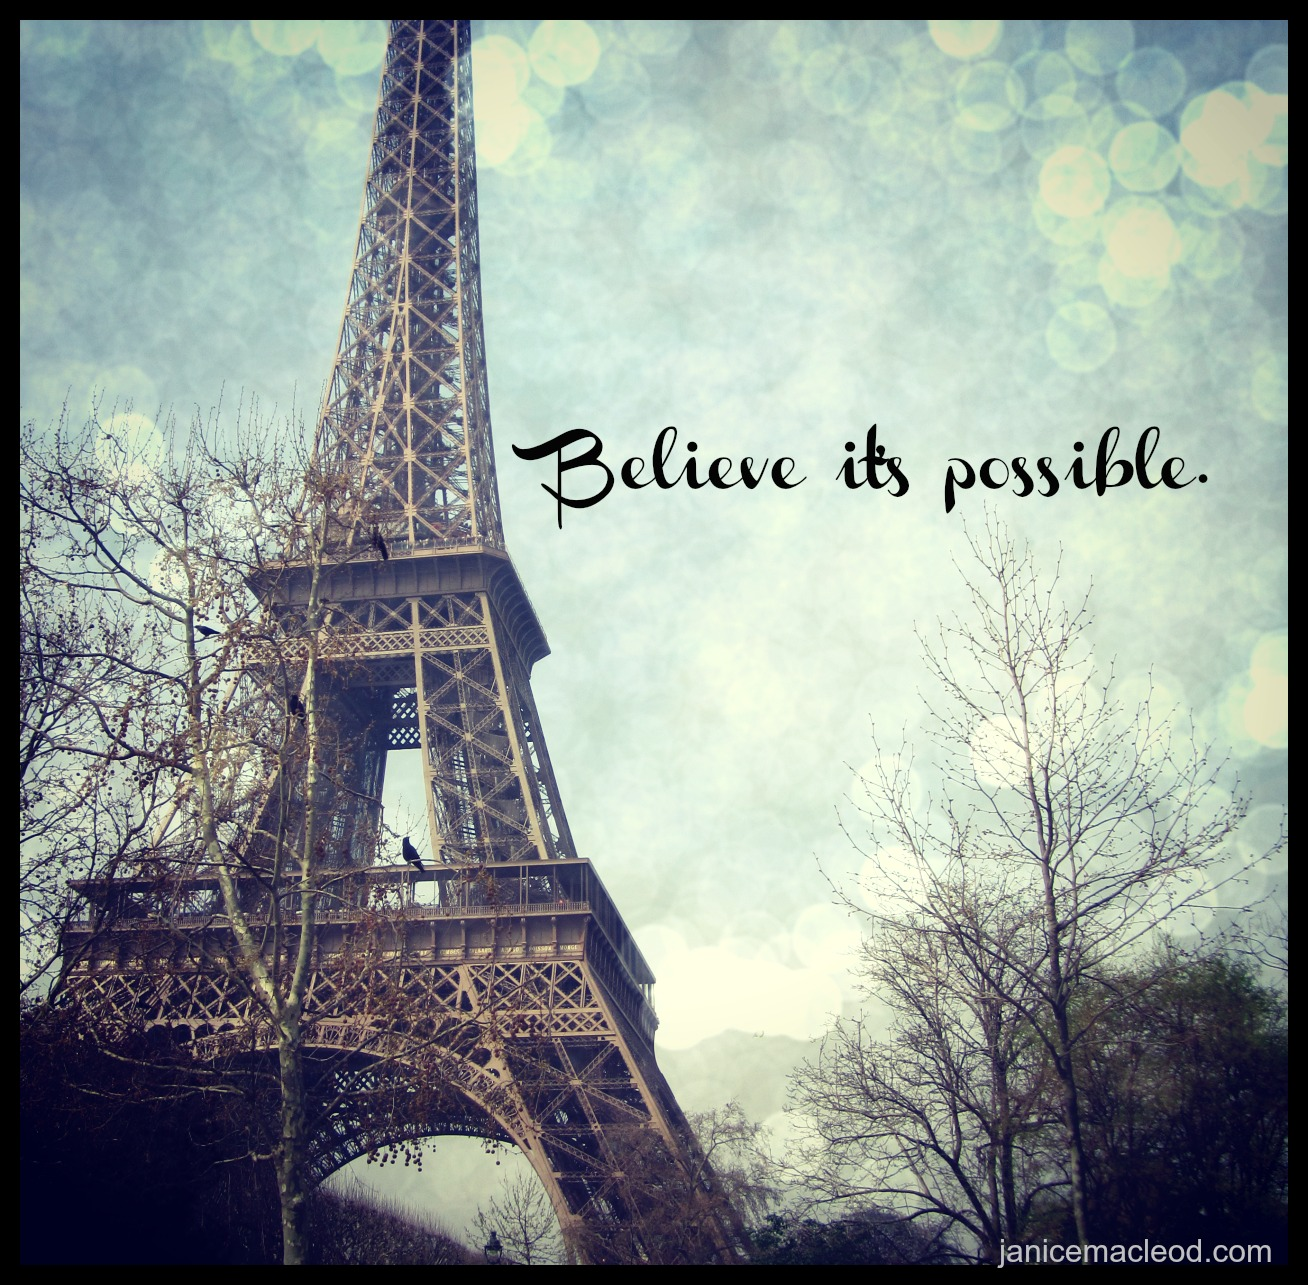 Believe it's possible_Janice MacLeod